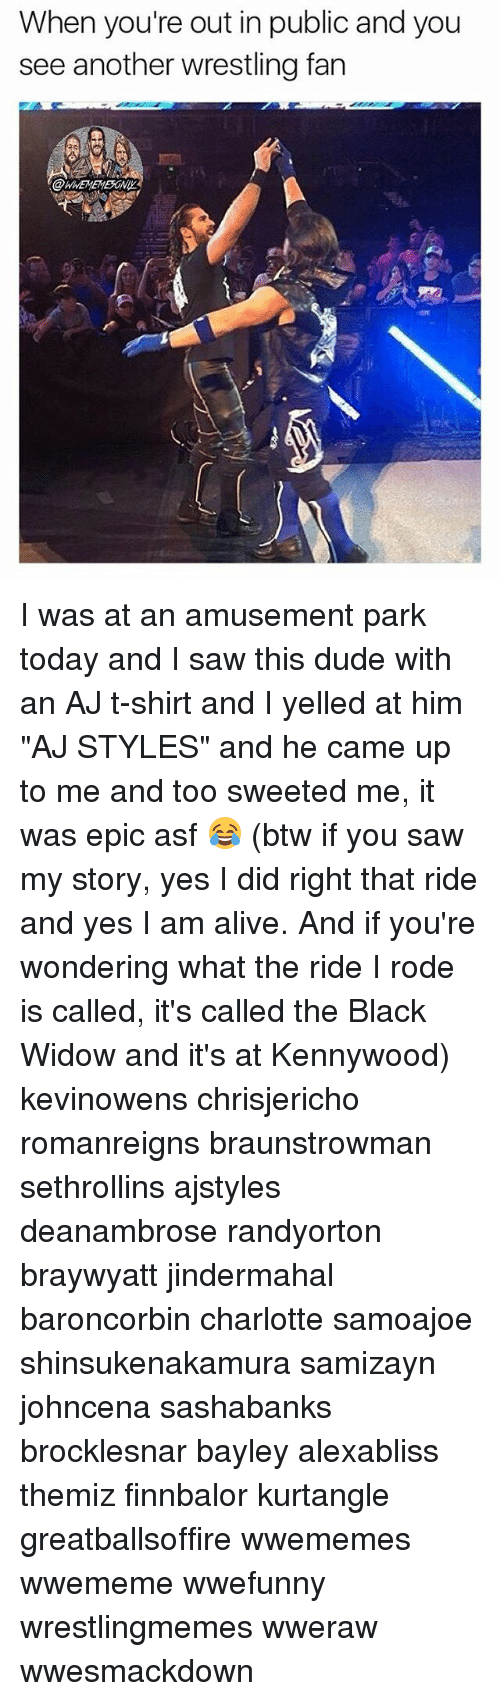 "Alive, Dude, and Memes: When you're out in public and you  see another wrestling fan I was at an amusement park today and I saw this dude with an AJ t-shirt and I yelled at him ""AJ STYLES"" and he came up to me and too sweeted me, it was epic asf 😂 (btw if you saw my story, yes I did right that ride and yes I am alive. And if you're wondering what the ride I rode is called, it's called the Black Widow and it's at Kennywood) kevinowens chrisjericho romanreigns braunstrowman sethrollins ajstyles deanambrose randyorton braywyatt jindermahal baroncorbin charlotte samoajoe shinsukenakamura samizayn johncena sashabanks brocklesnar bayley alexabliss themiz finnbalor kurtangle greatballsoffire wwememes wwememe wwefunny wrestlingmemes wweraw wwesmackdown"